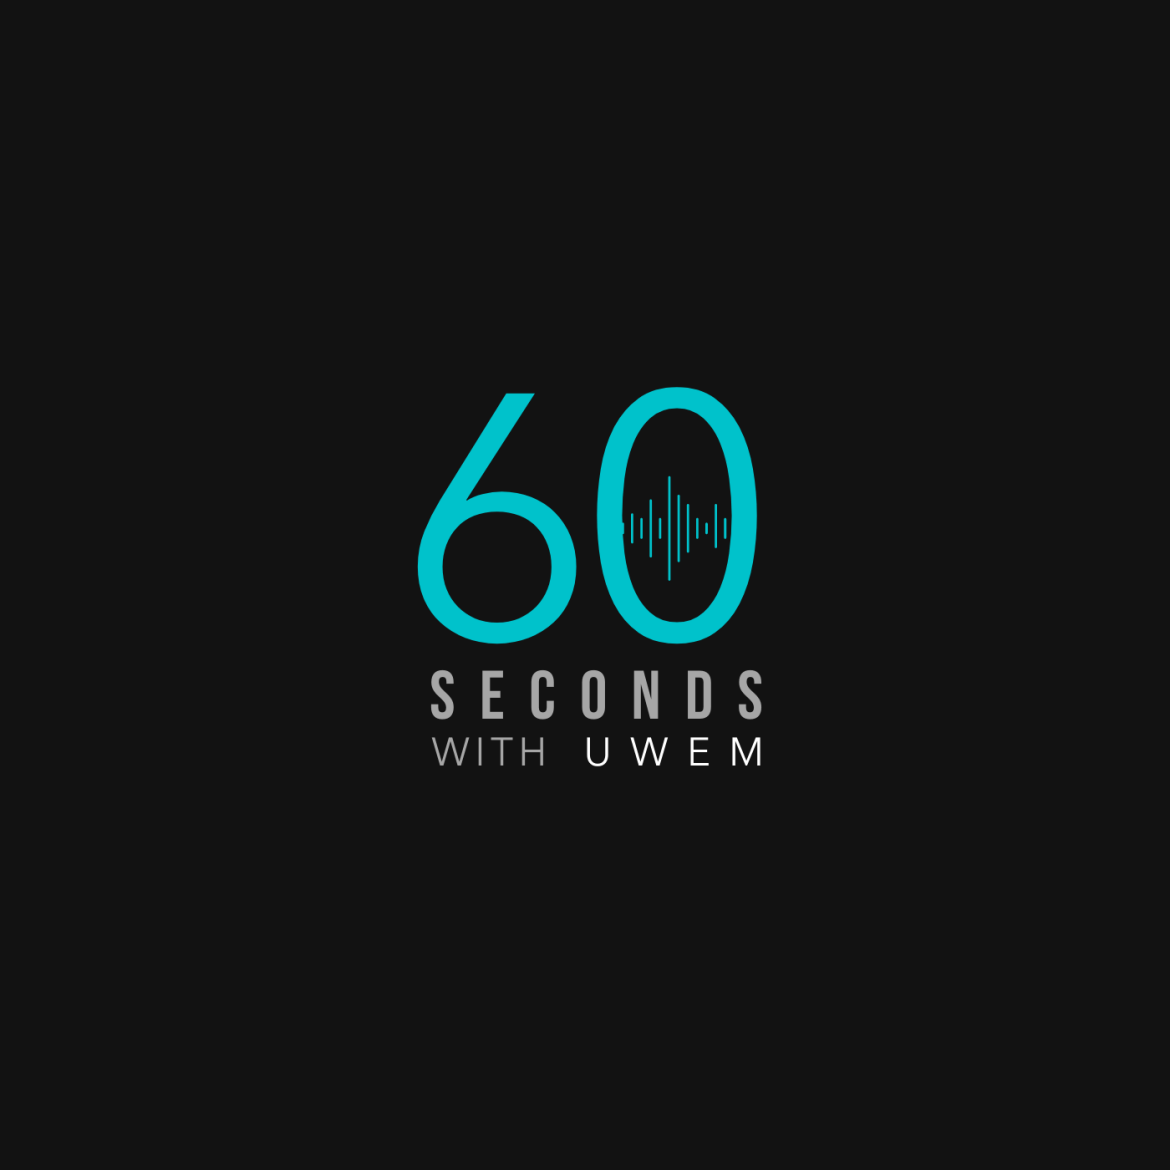 60 Seconds with Uwem